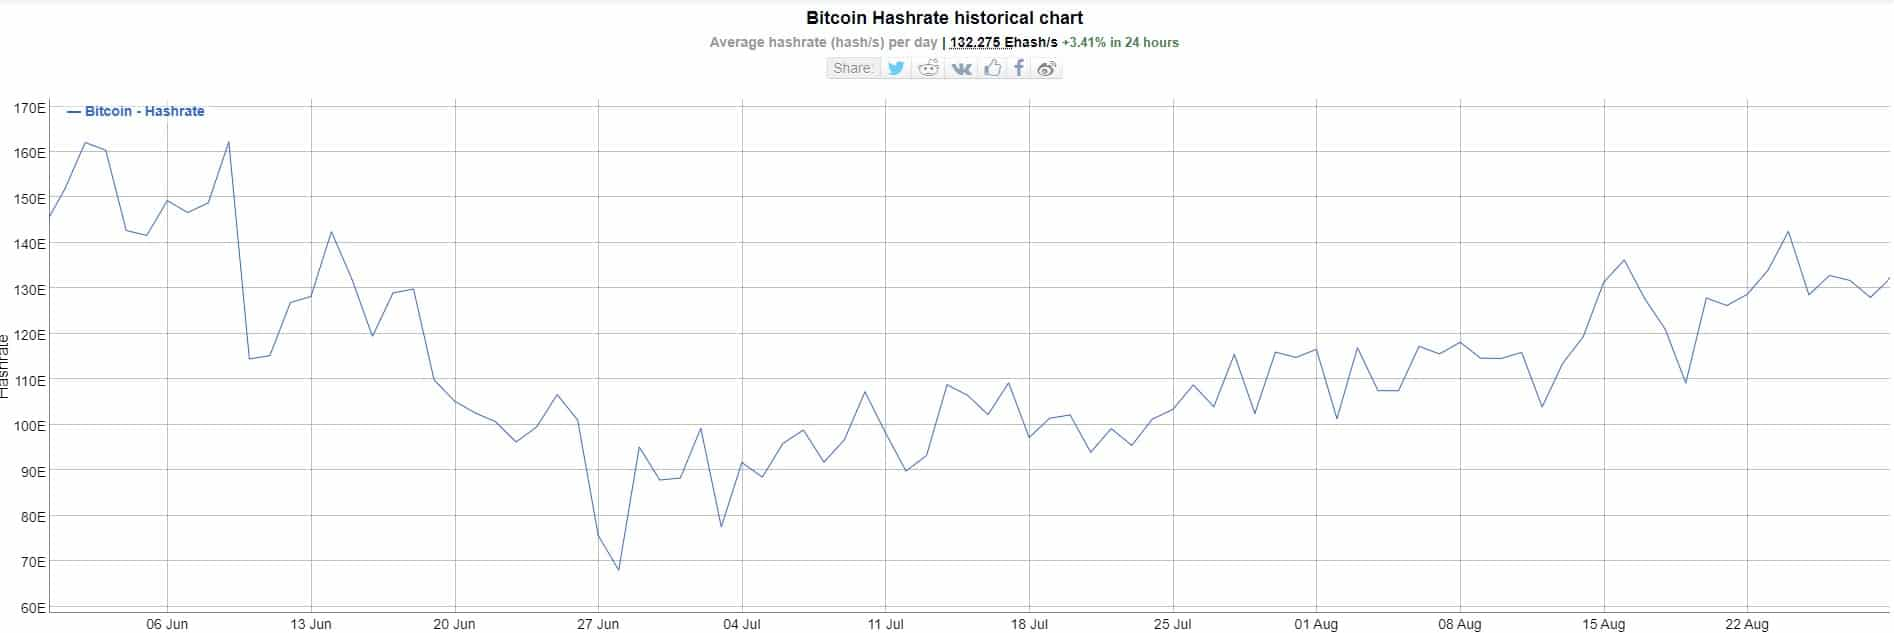 The Bitcoin Network Continues to Strengthen as Hash Rate Doubles Since June